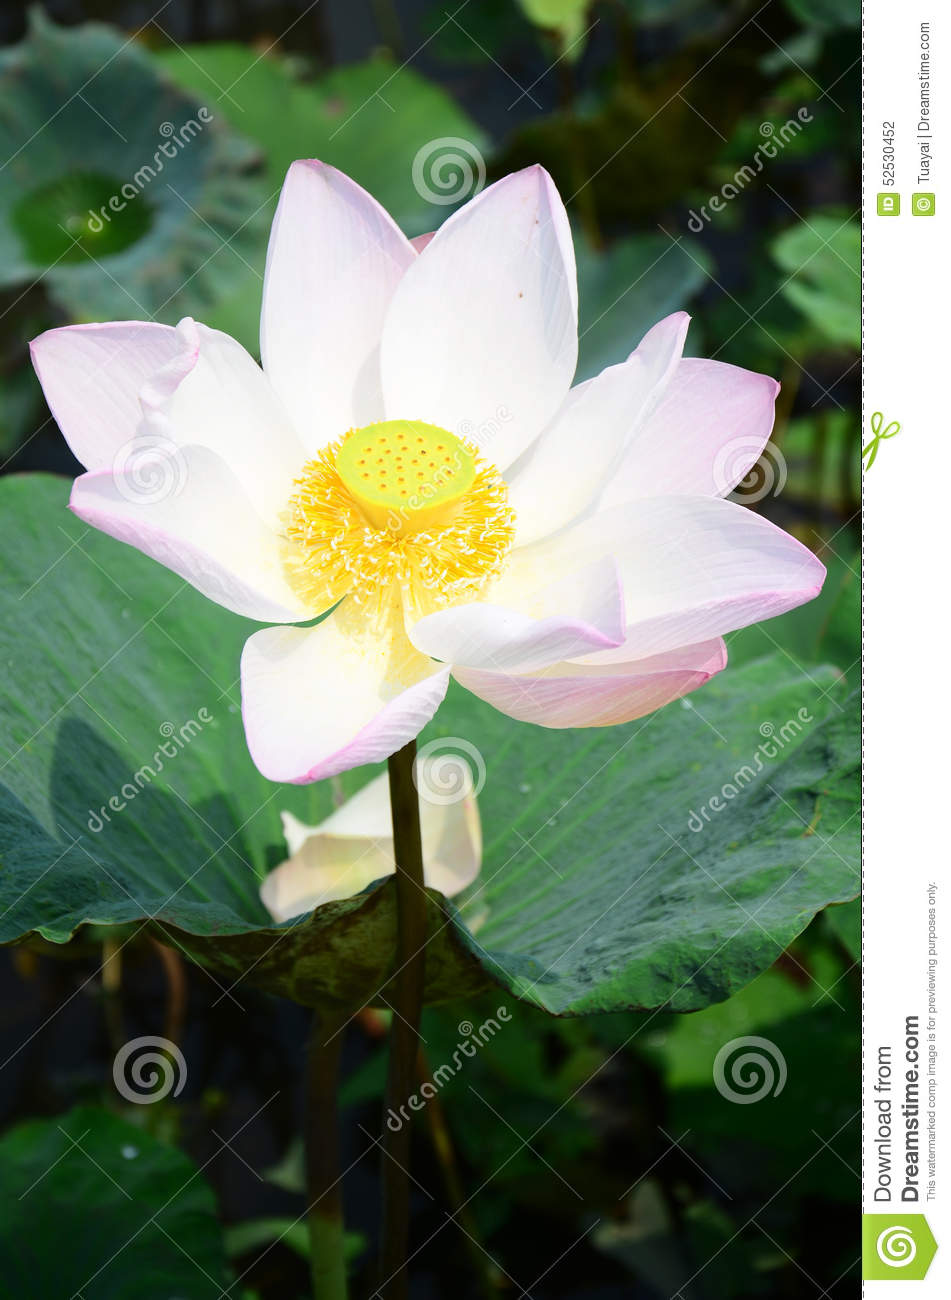 Lotus flower or water lilly blossom in pond stock photo image of the lotus flower is an aquatic perennial sometimes mistaken for the water lily the lotus has a distinctively different structure izmirmasajfo